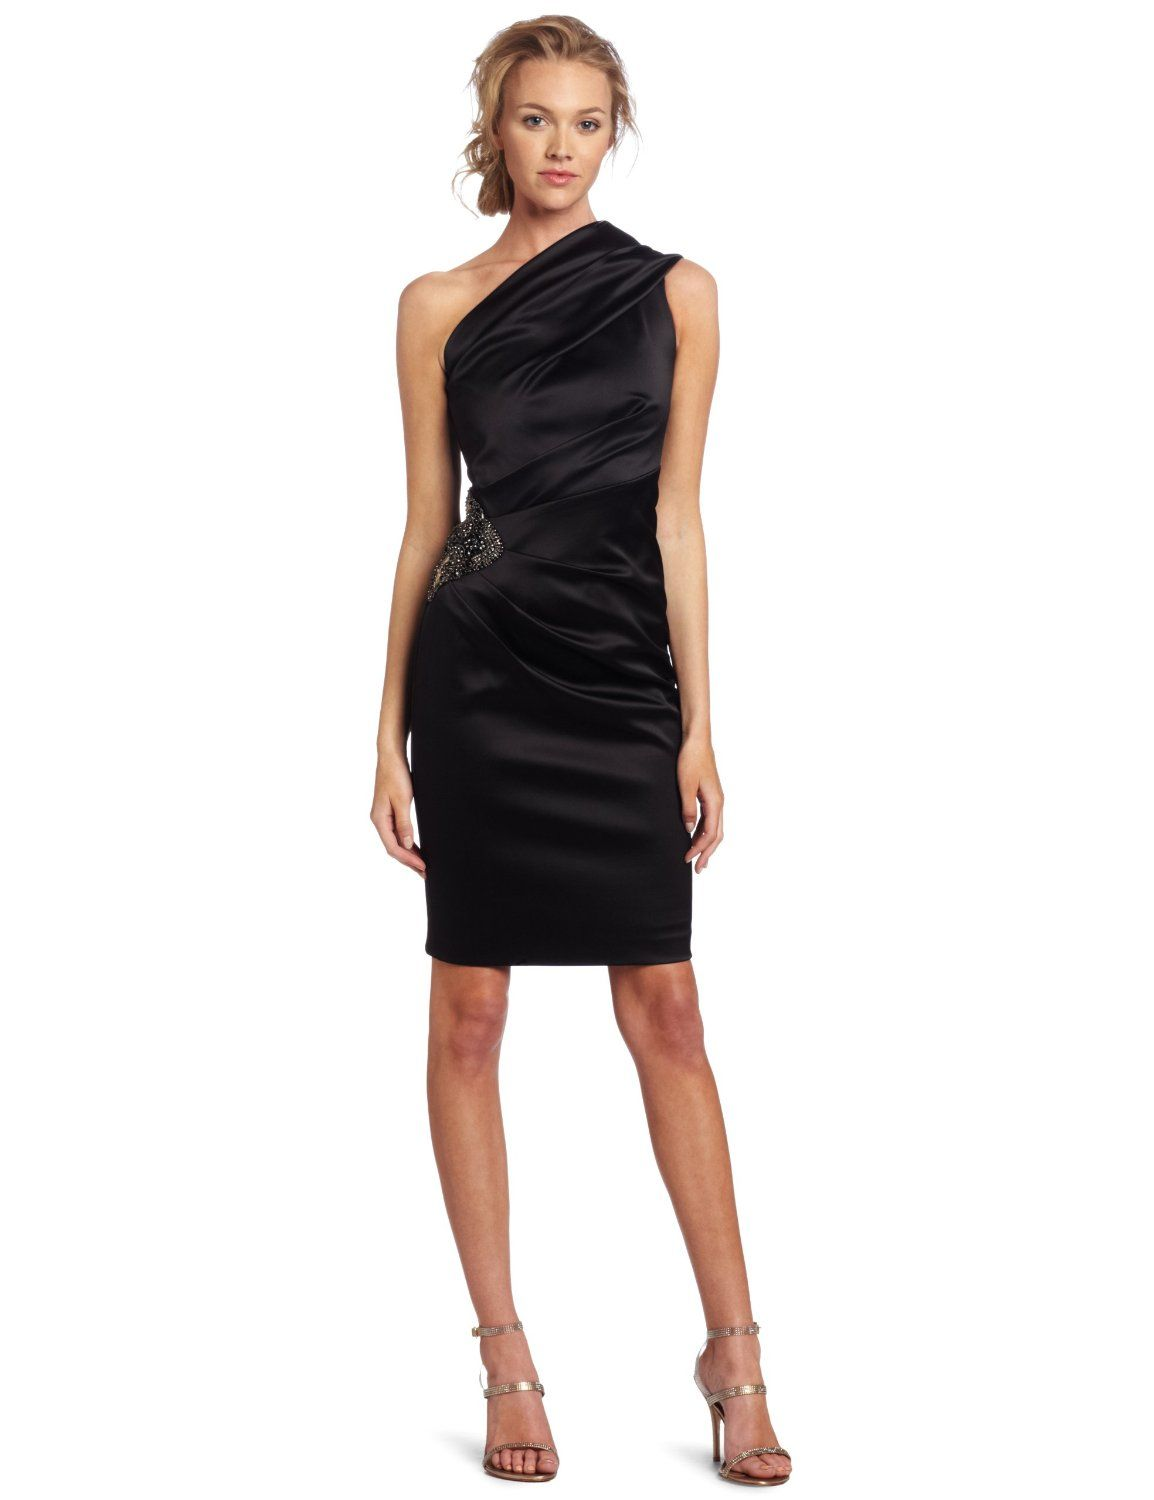 Vestidos de Festa | Black cocktail dress